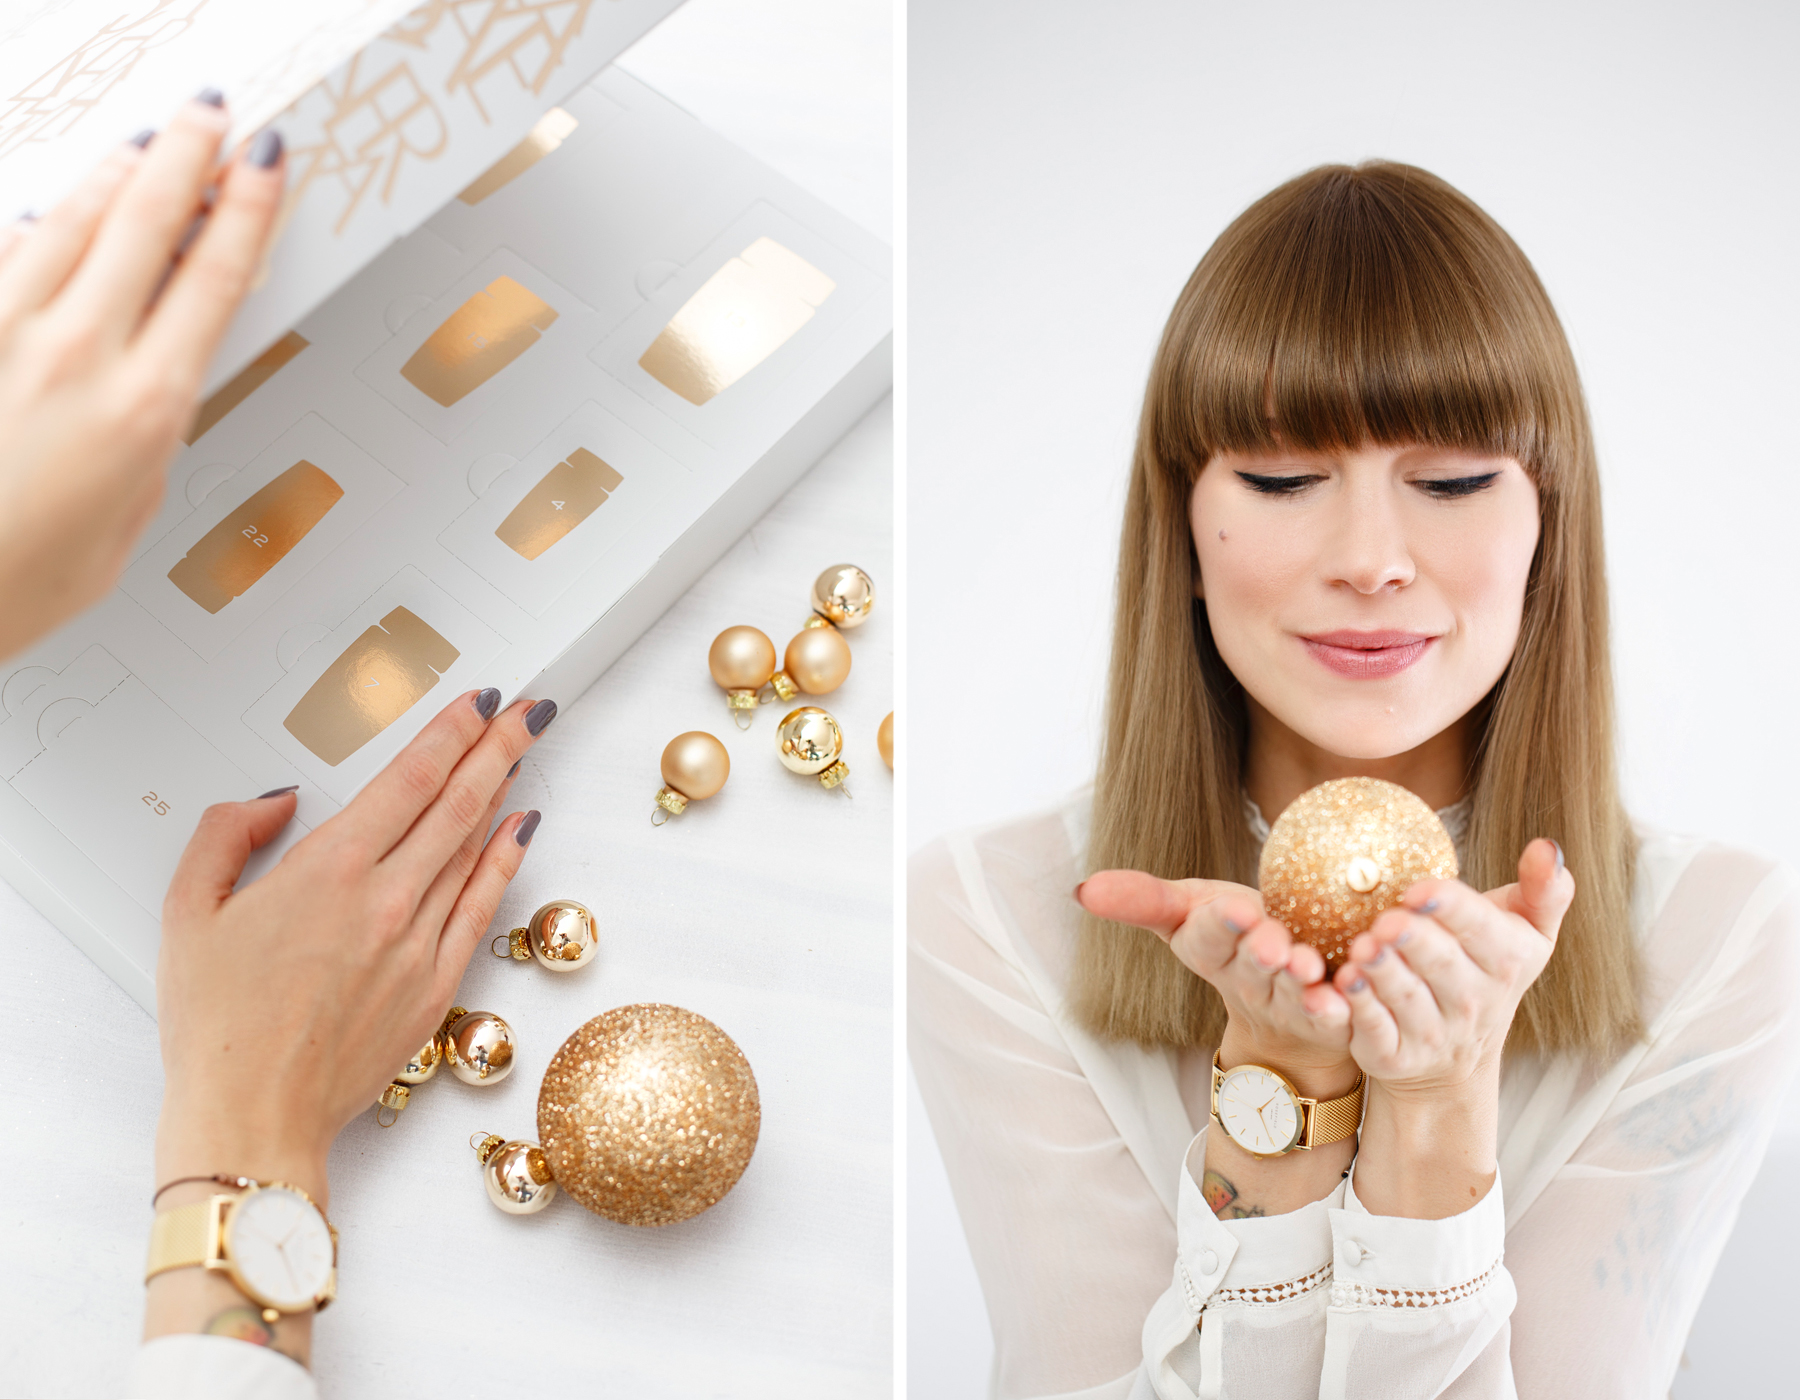 kérastase adventskalender advent calendar golden christmas shiny luxury hair care haircare beautyblogger white christmas winter look beautiful glamorous geschenk gift cats & dogs fashionblog ricarda schernus beauty blogger 6